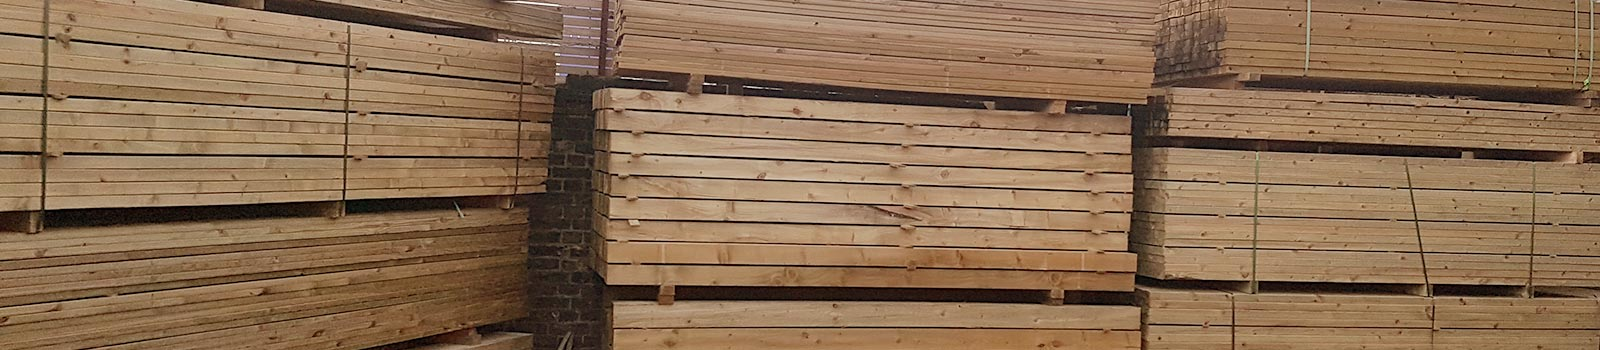 softwood timber carcassing